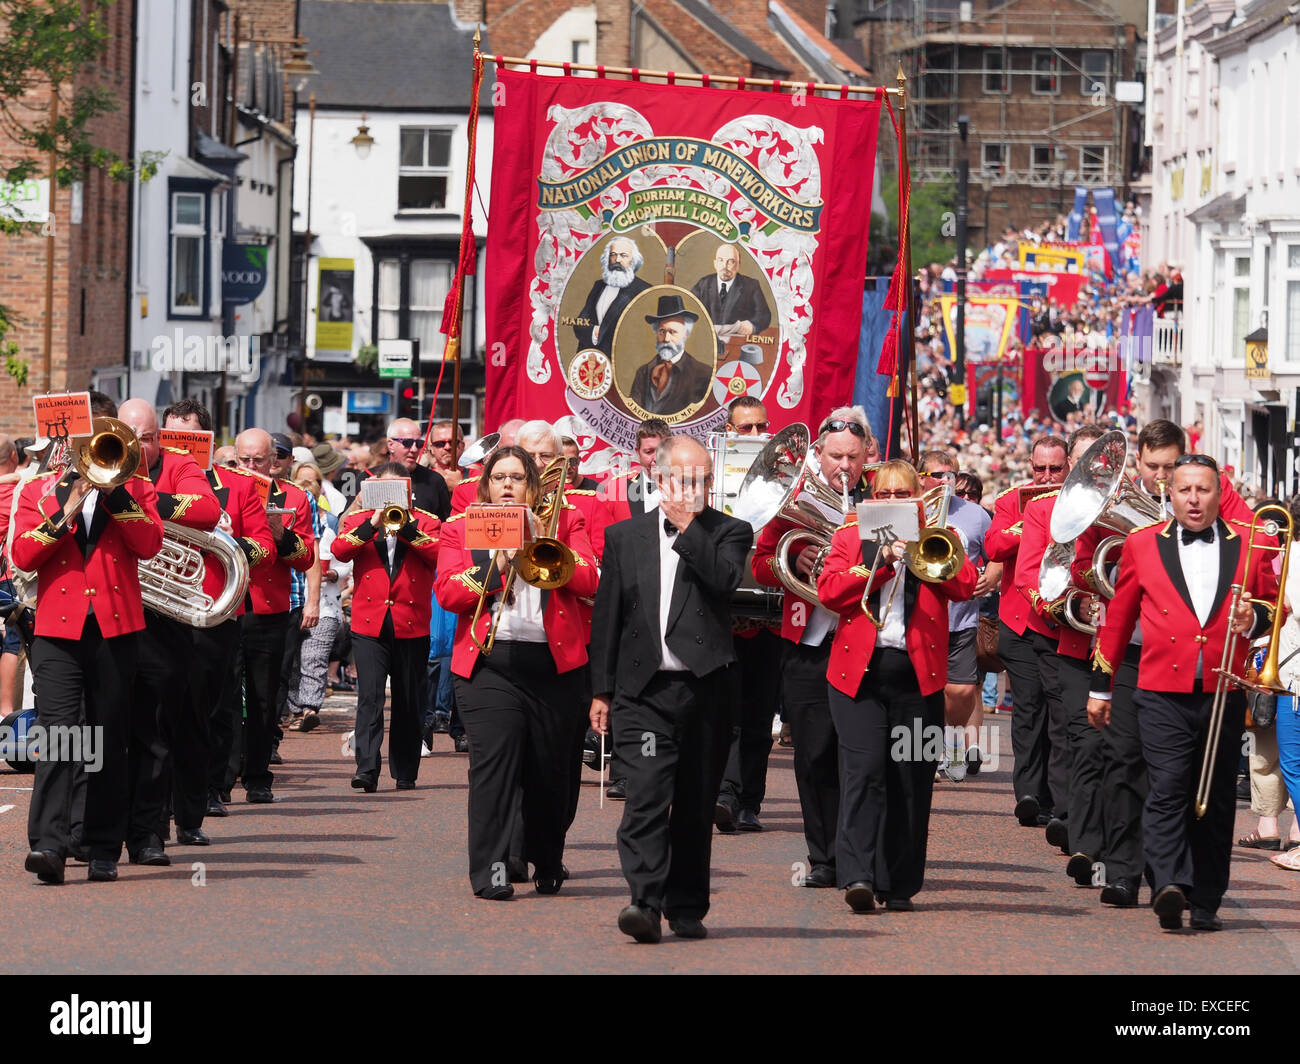 Durham, UK. 11th July, 2015. Parade of bands and banners at the Durham Miners Gala.Stock Photo